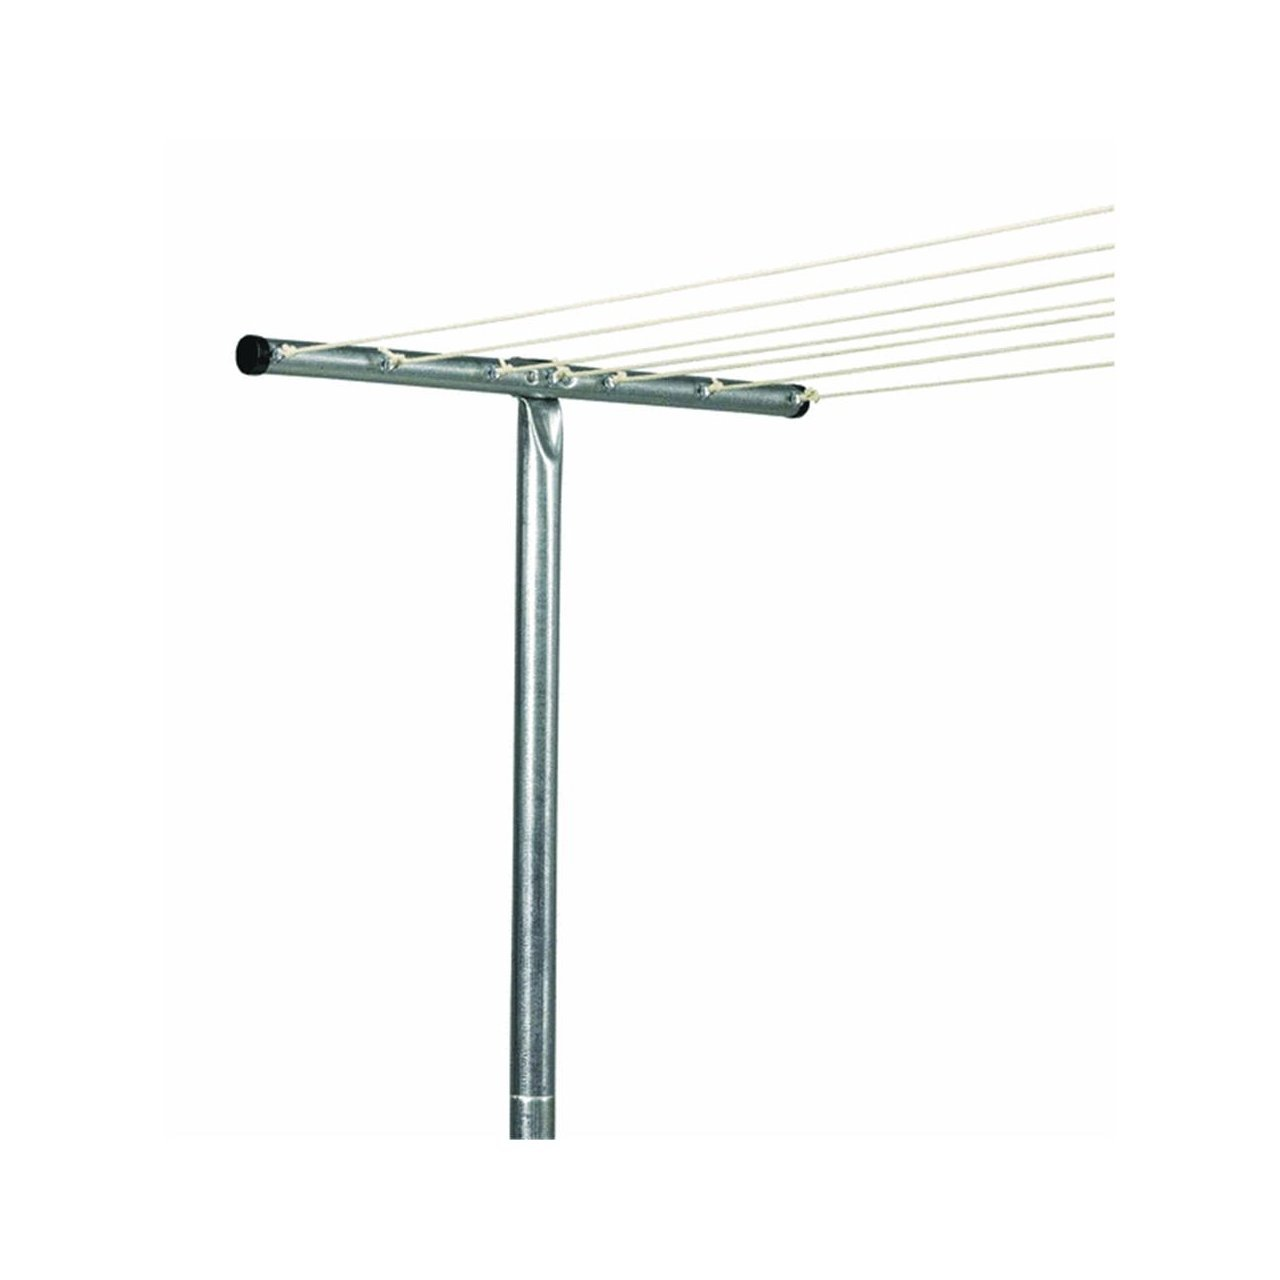 Steel Outdoor Clothesline T Post 170, Ship from USA,Brand...